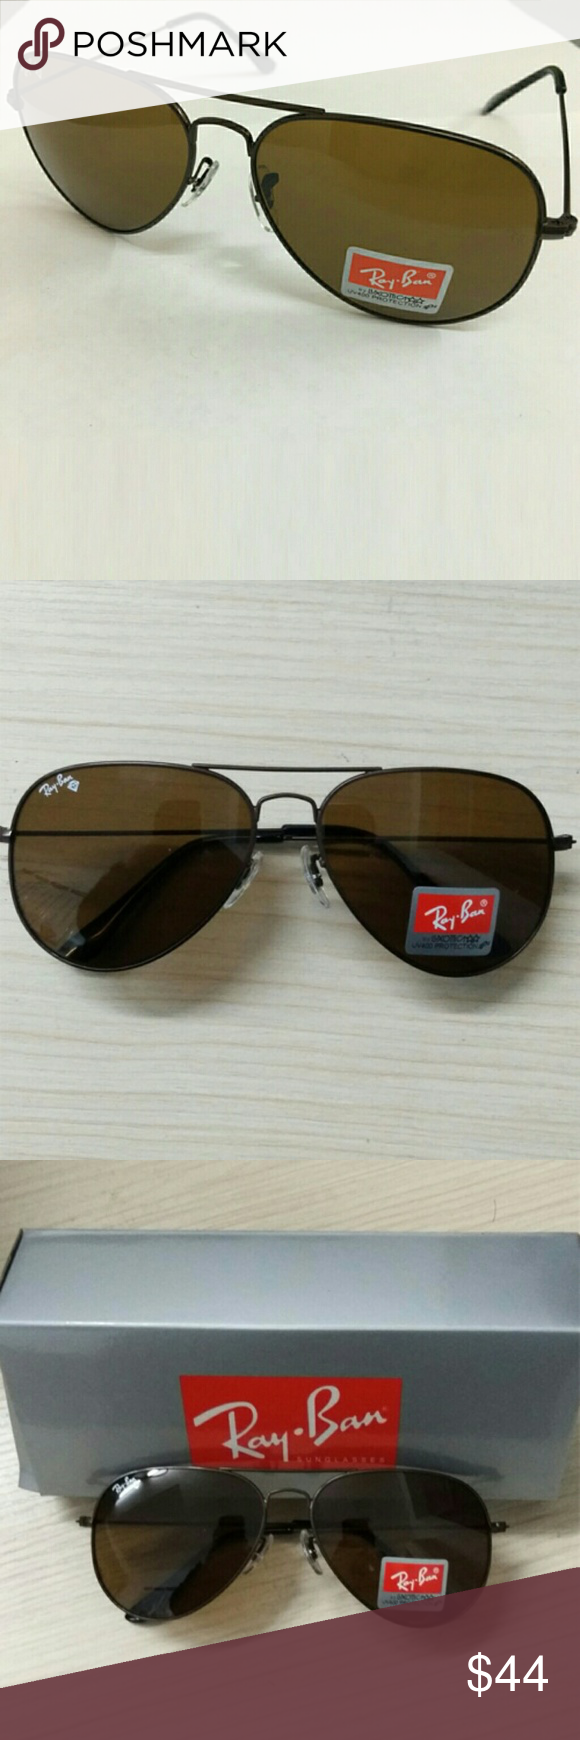 Ray-Ban Aviator RB3025 Large Metal Aviator Sunglas Brand:Ray-Ban Material:Metal frame,Crystal lens non-polarized  Size:Lens width:58mm  Lens height:50mm  Bridge:18mm  Arm:135mm Package contain:1*rayban sunglasses,1*manual,1*cleaning cloth,1*glasses case,1*box Accessories Sunglasses